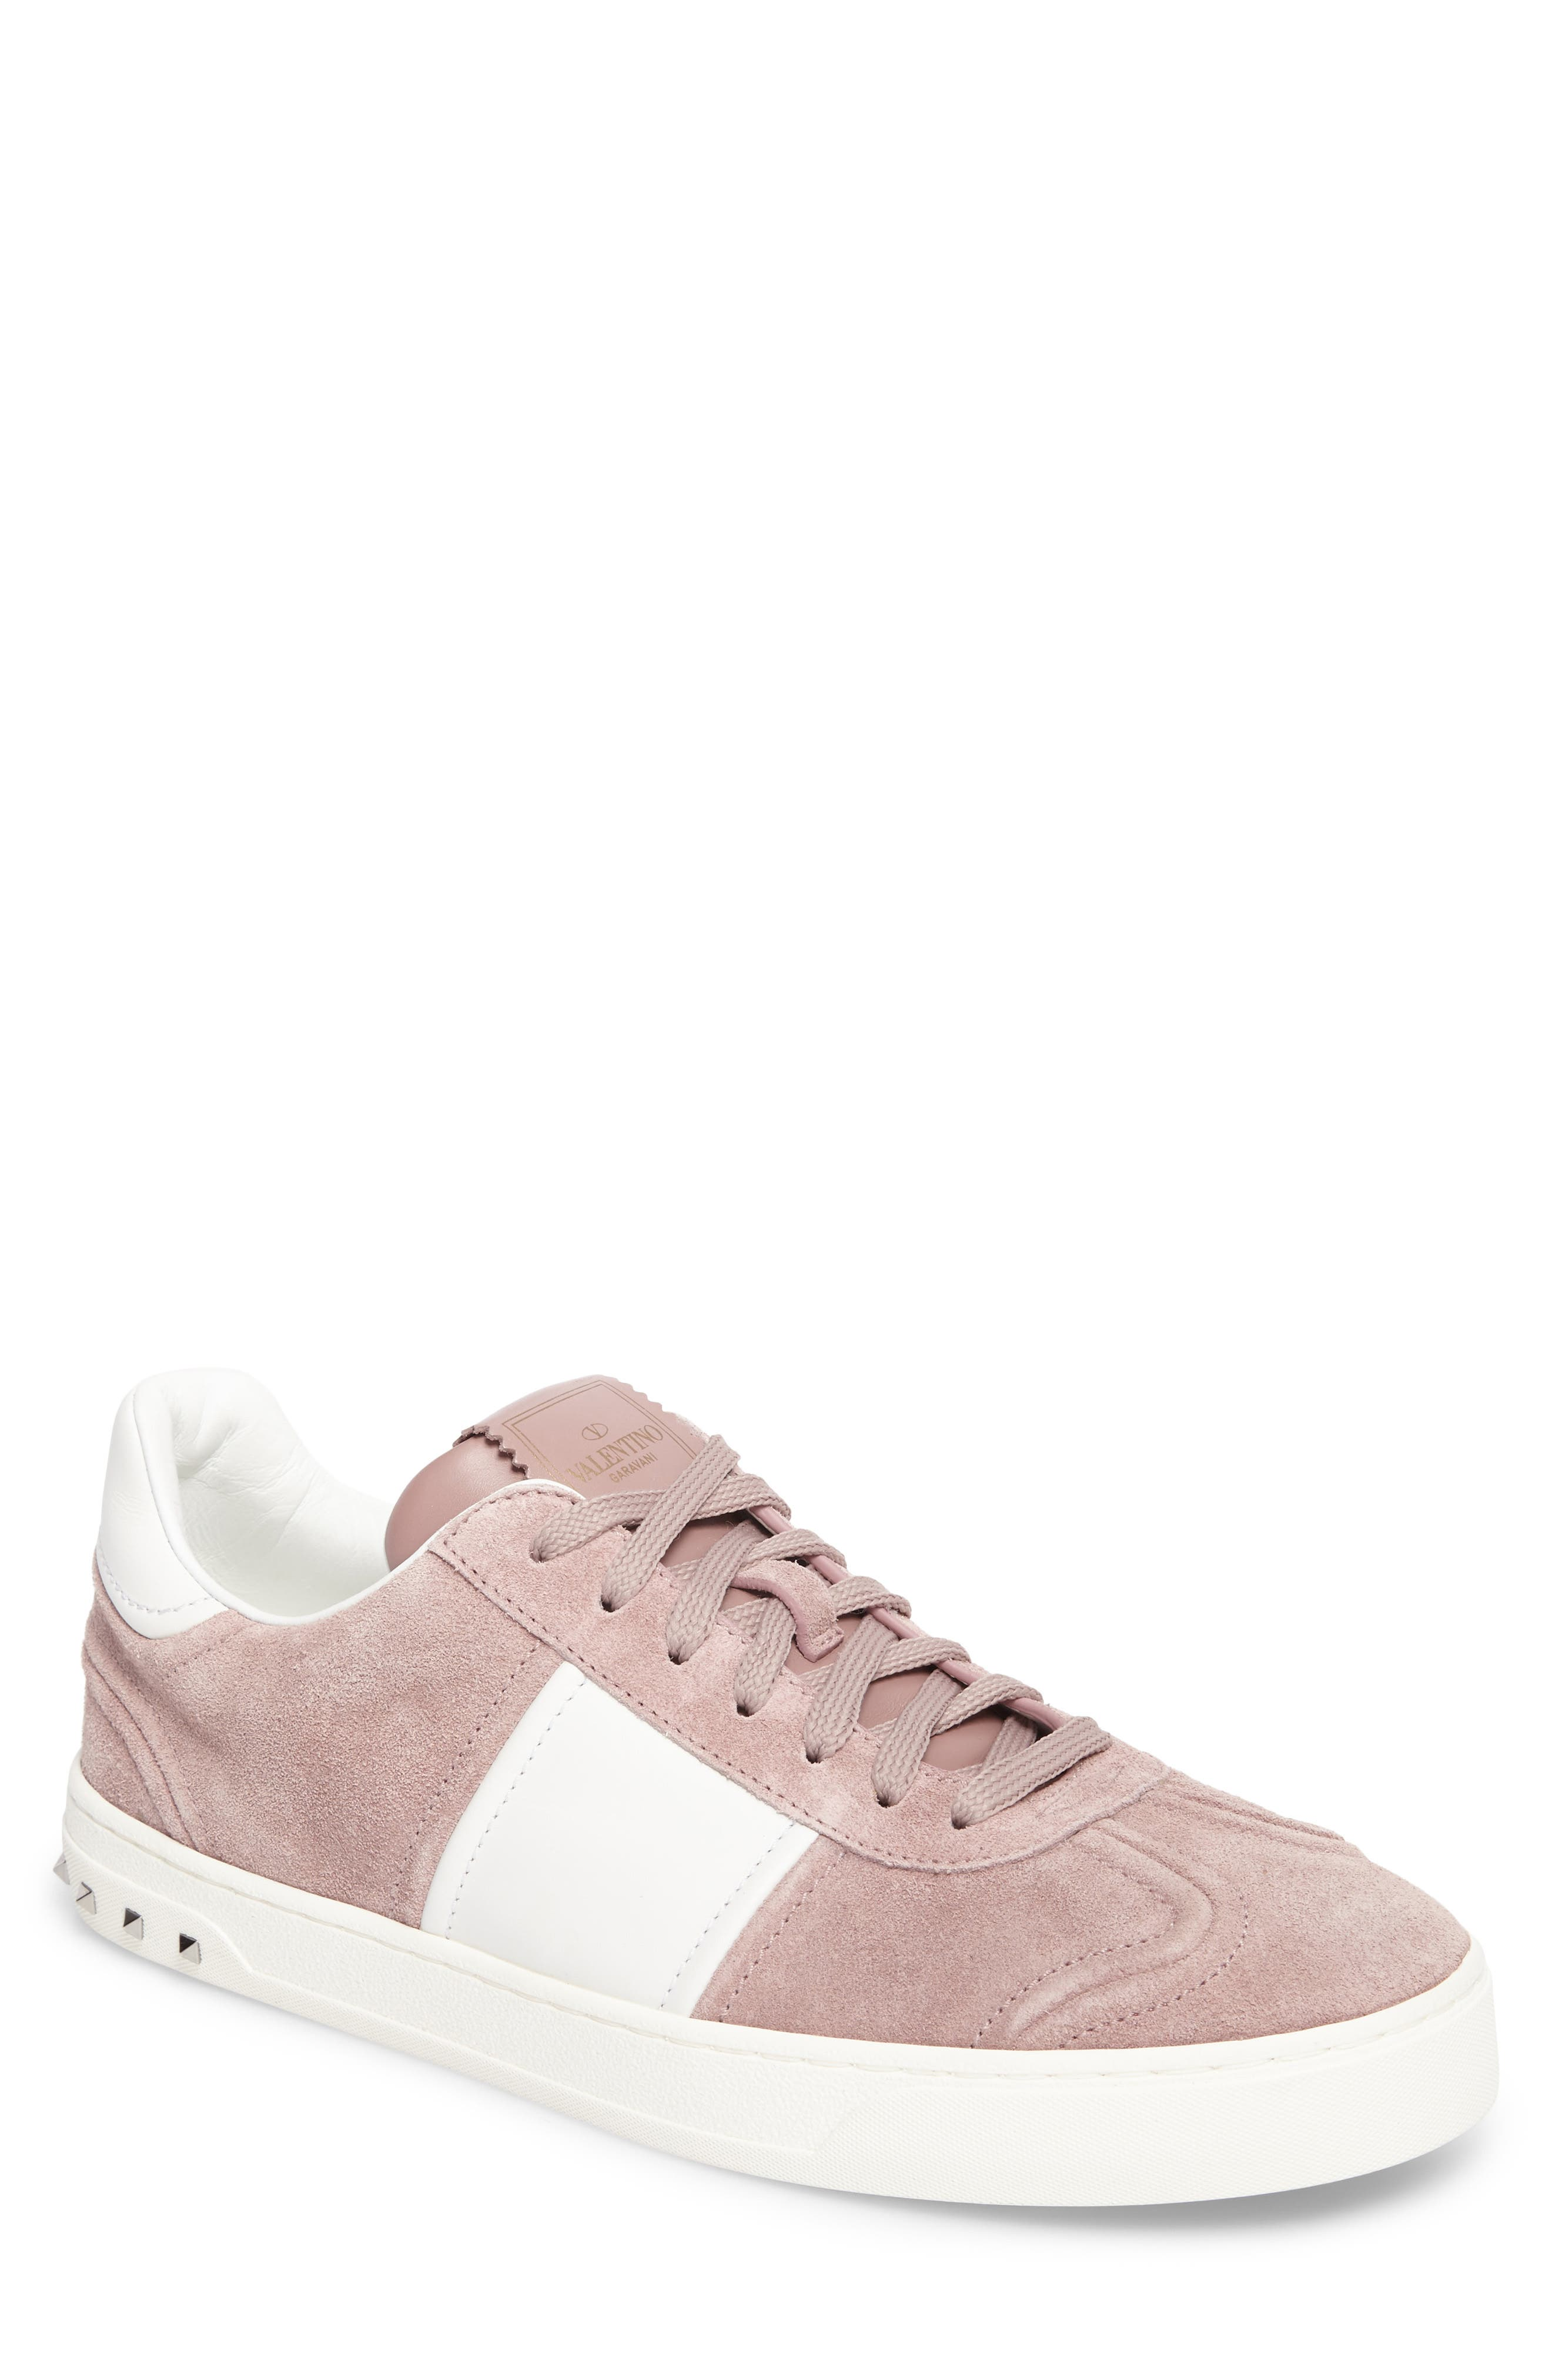 Fly Crew Sneaker,                         Main,                         color, 633